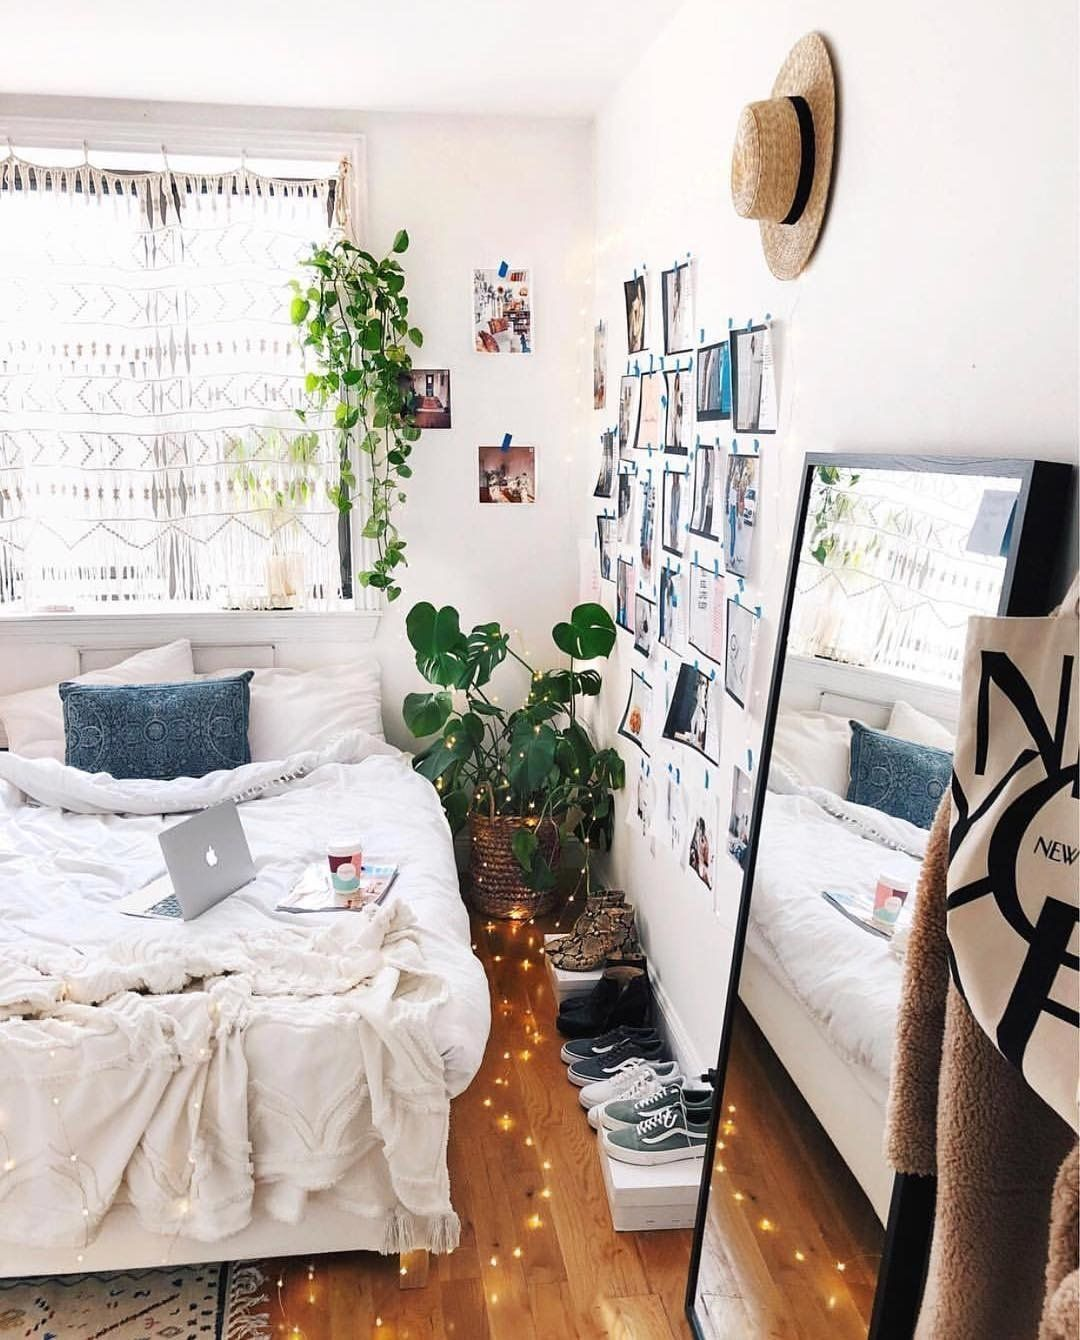 37 urban outfitters bedroom ideas bedroom urban outfitters rh pinterest com urban outfitters bedroom inspiration urban outfitters bedroom decor